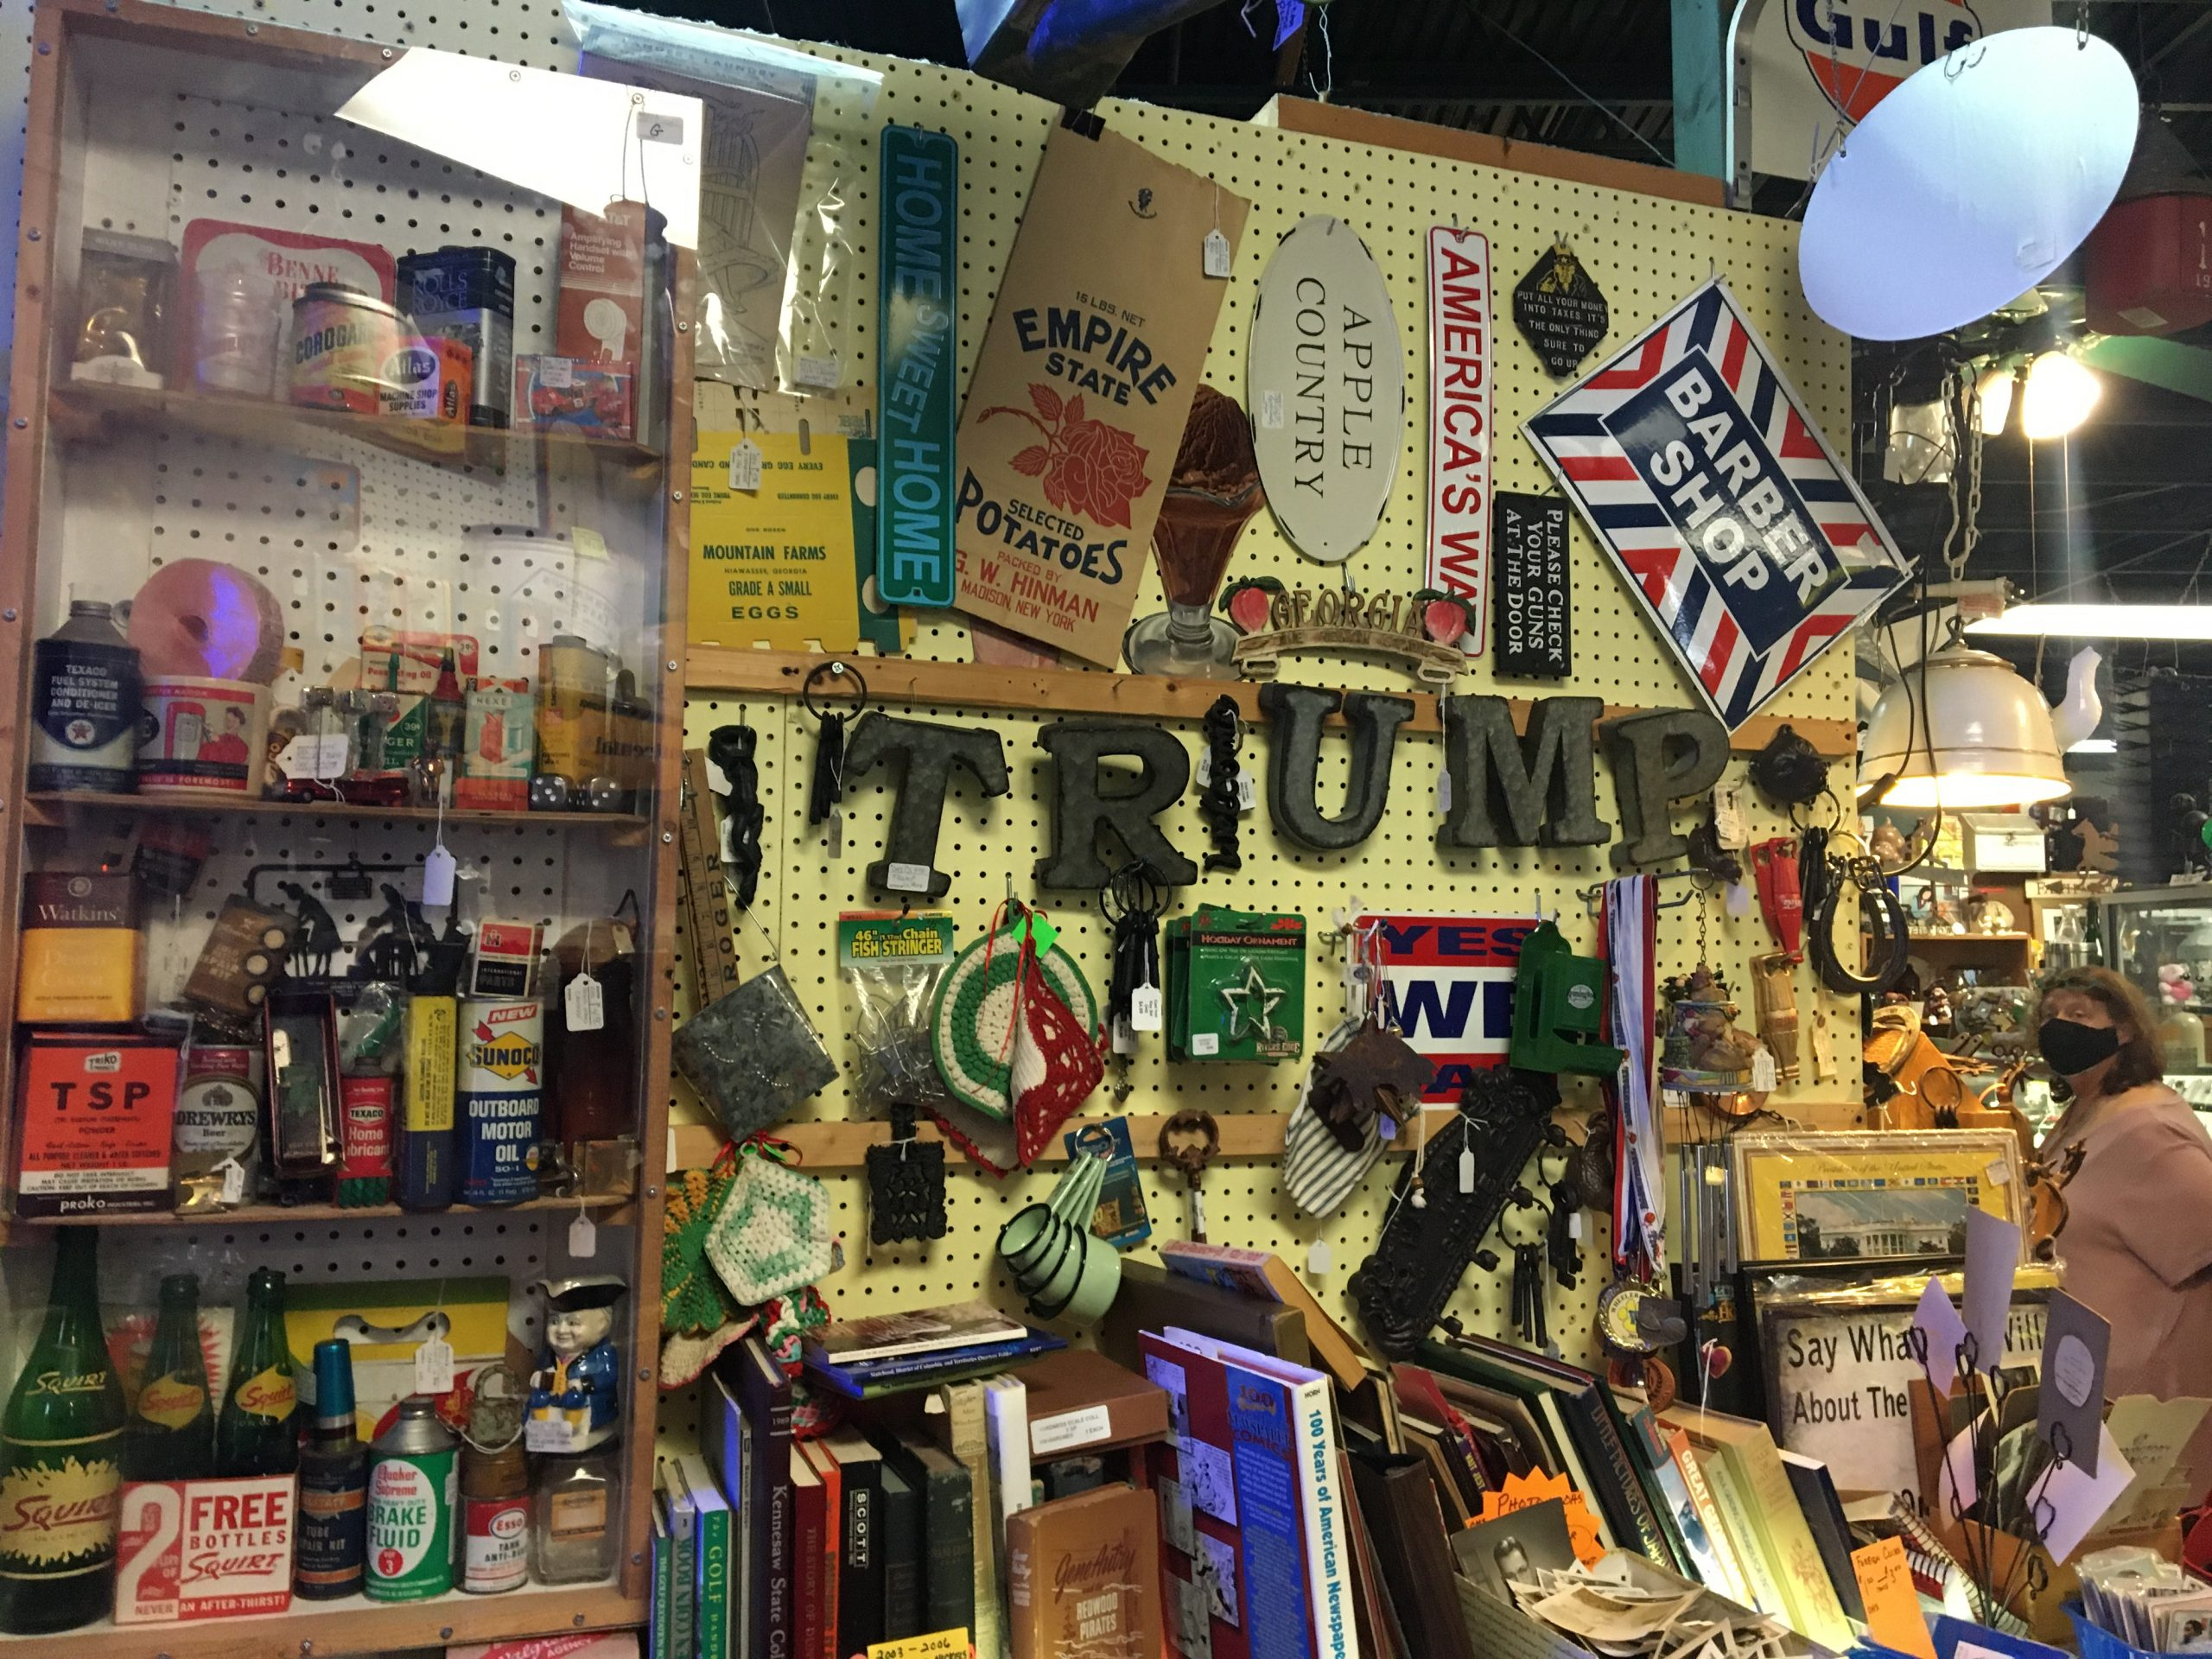 Trump unofficial signage in Ellijay, GA